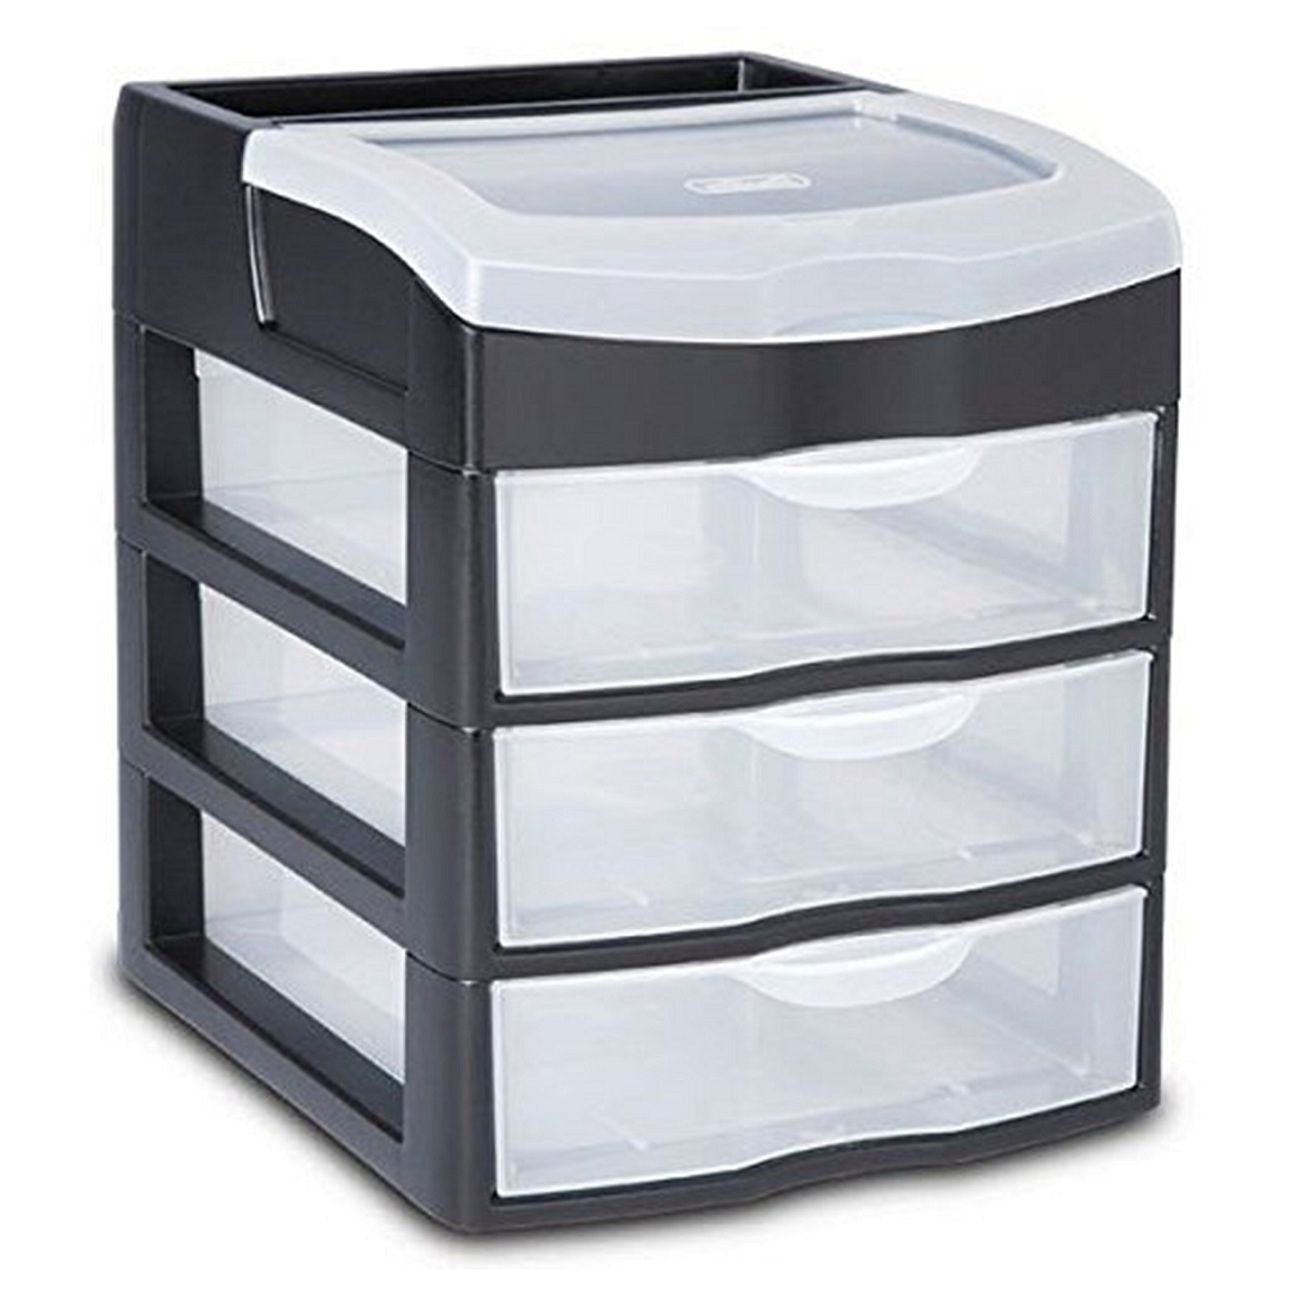 Get Quotations · 3 Drawer Mini Plastic Storage Drawers Clear Rack Container Organizer  sc 1 st  Alibaba & Cheap Plastic Storage 3 Drawers find Plastic Storage 3 Drawers ...